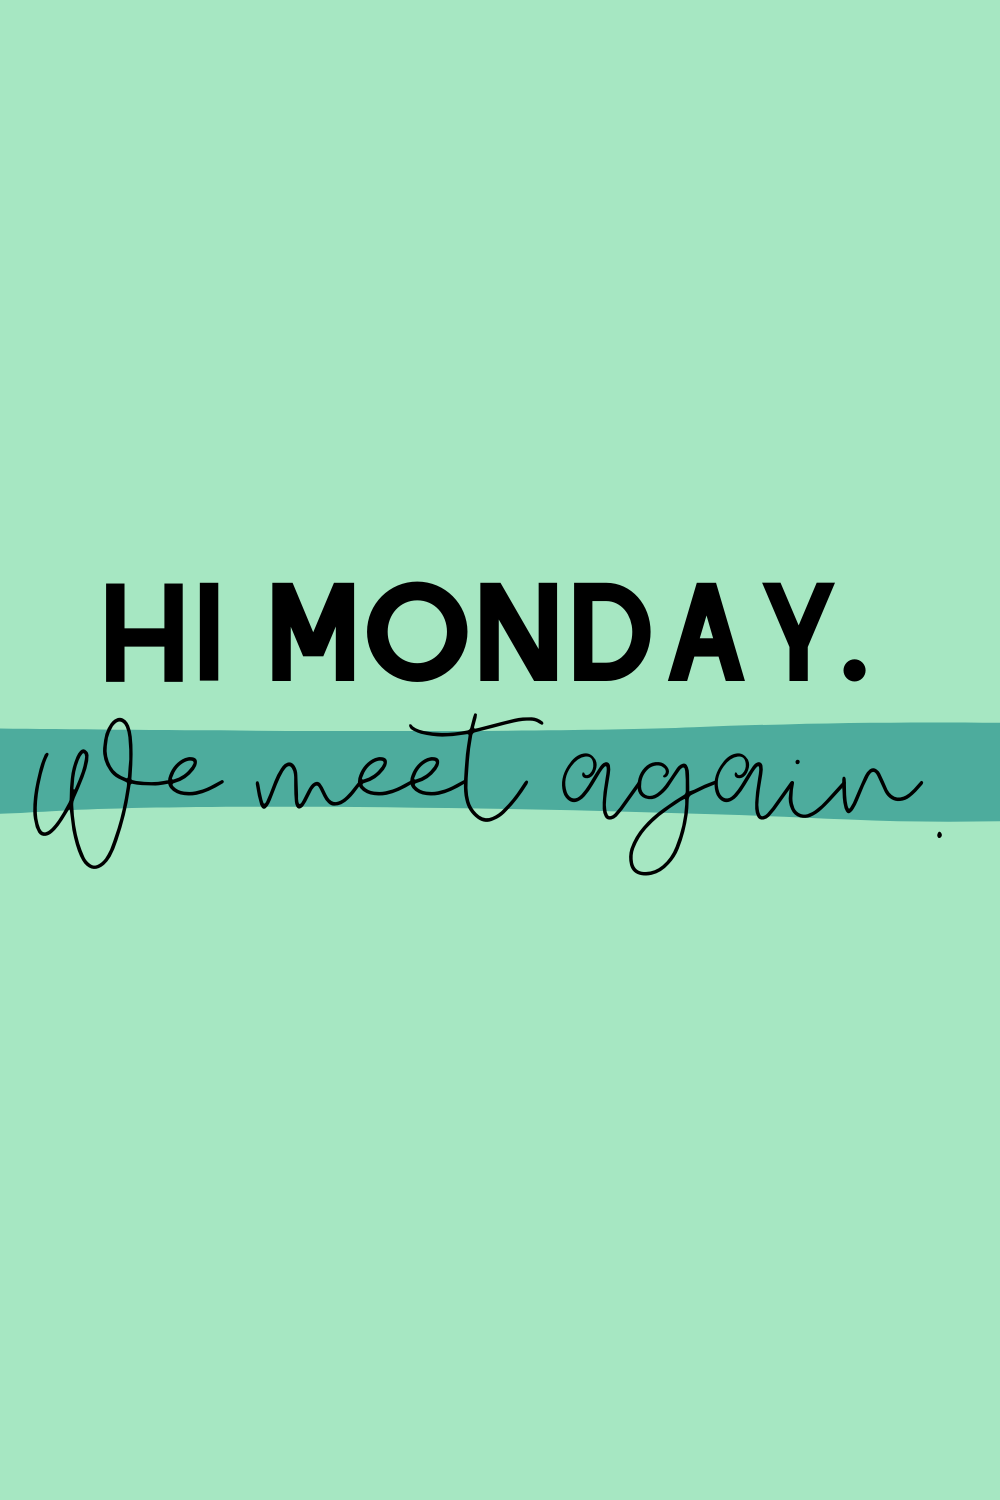 Happy Monday Quotes with Images